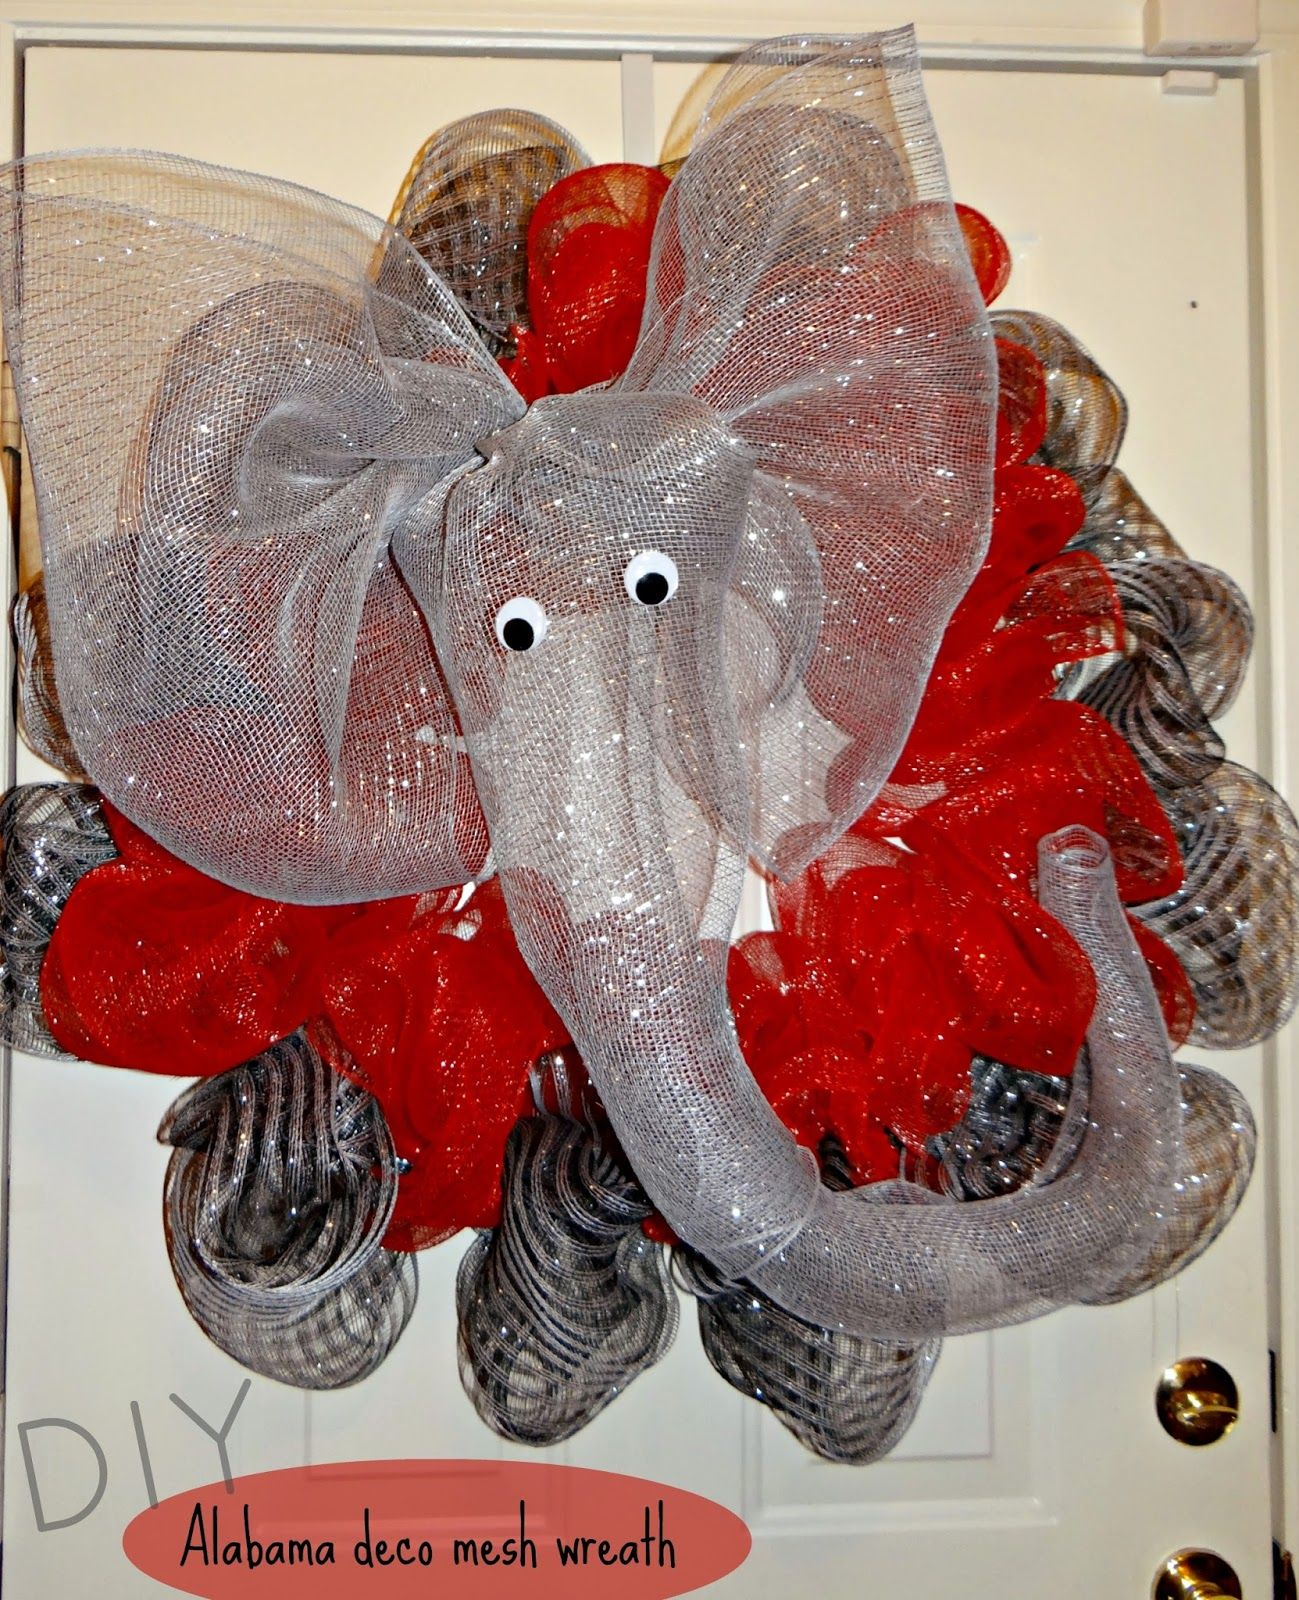 Pinterest Diy Deco Diy Alabama Deco Mesh Wreath Kelseycrumpton Blogspot